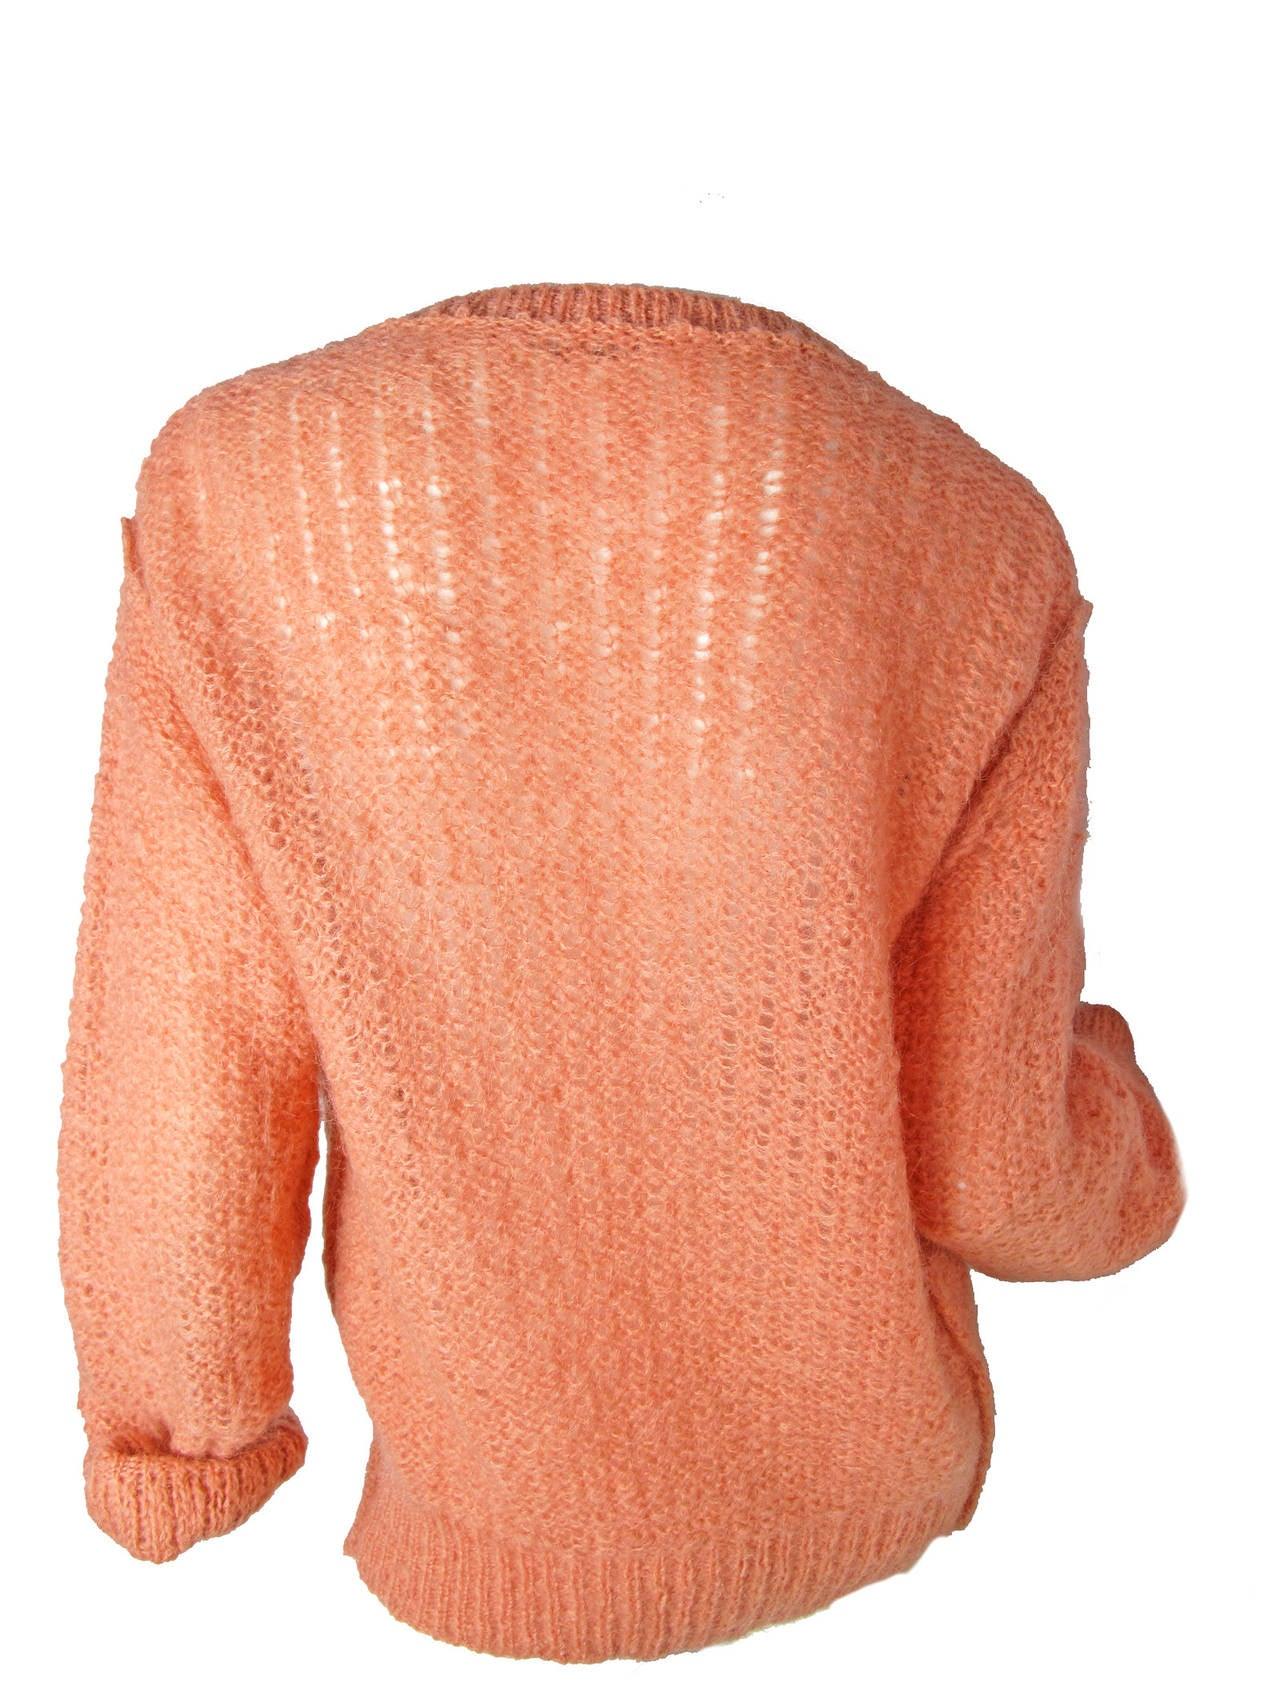 """Sonia Rykiel pink wool cardigan, tie at bottom, button at top.  Condition: Excellent.   40"""" bust, 32"""" waist, 24"""" sleeve, 26"""" length.   Size 42/ US 8  We accept returns for refund, please see our terms.  We offer free ground shipping within the"""